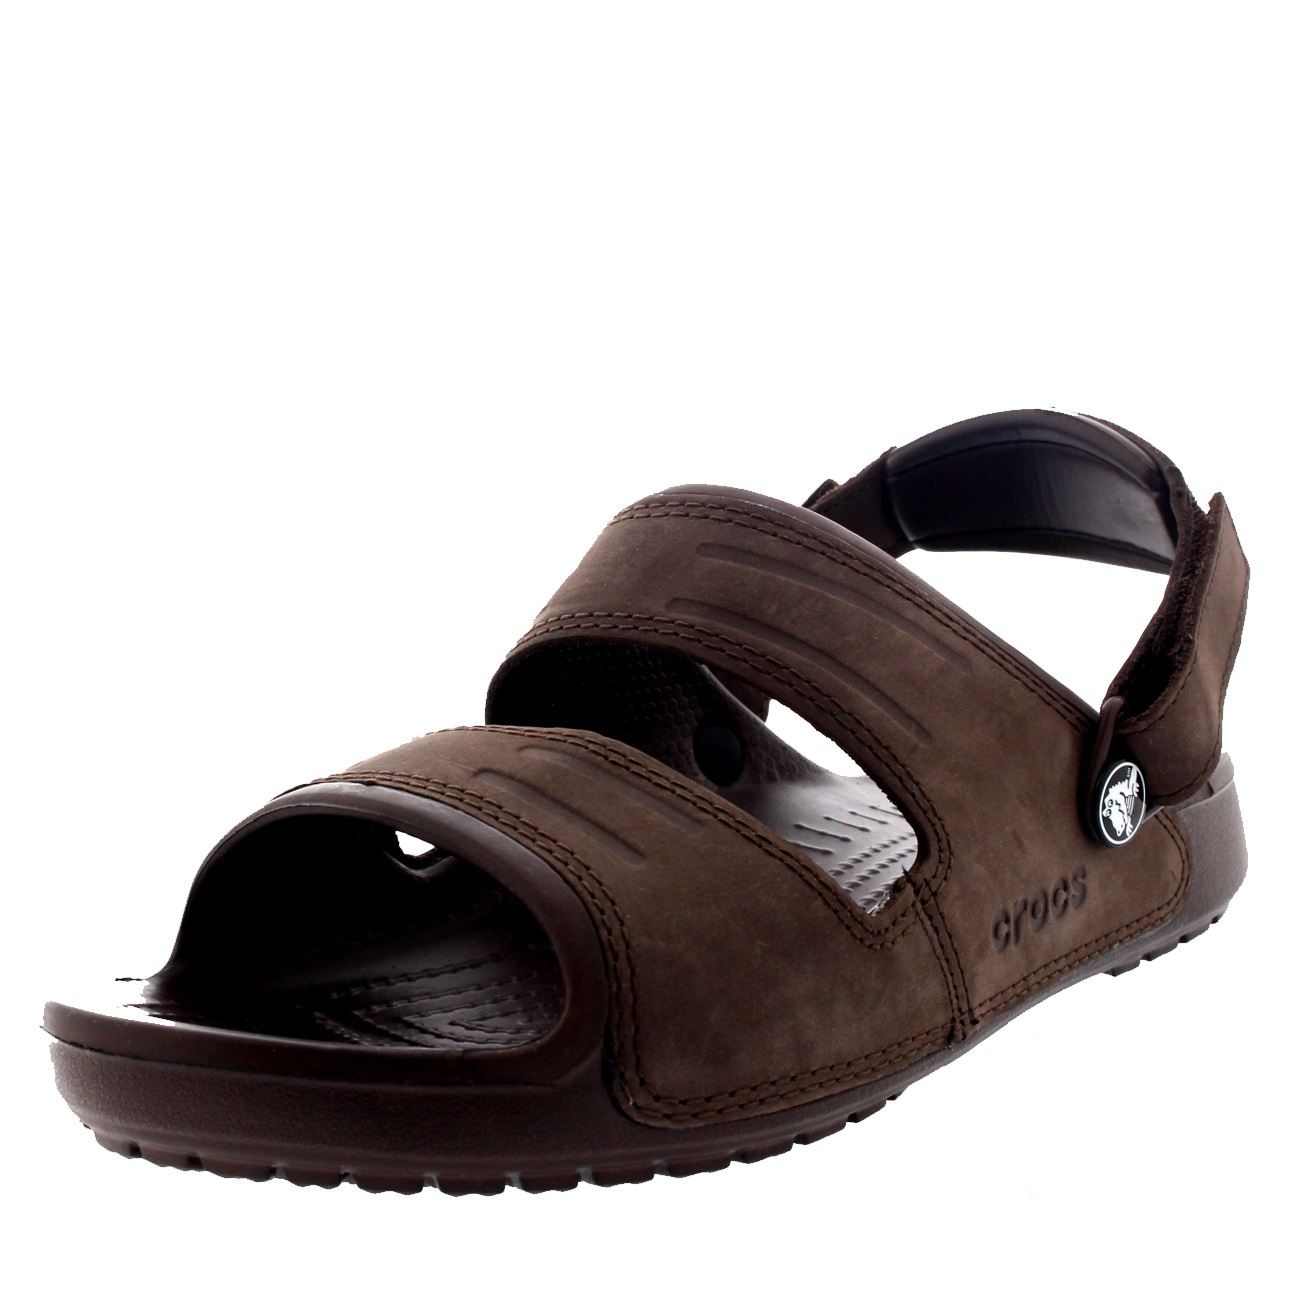 Crocs Yukon Two Strap